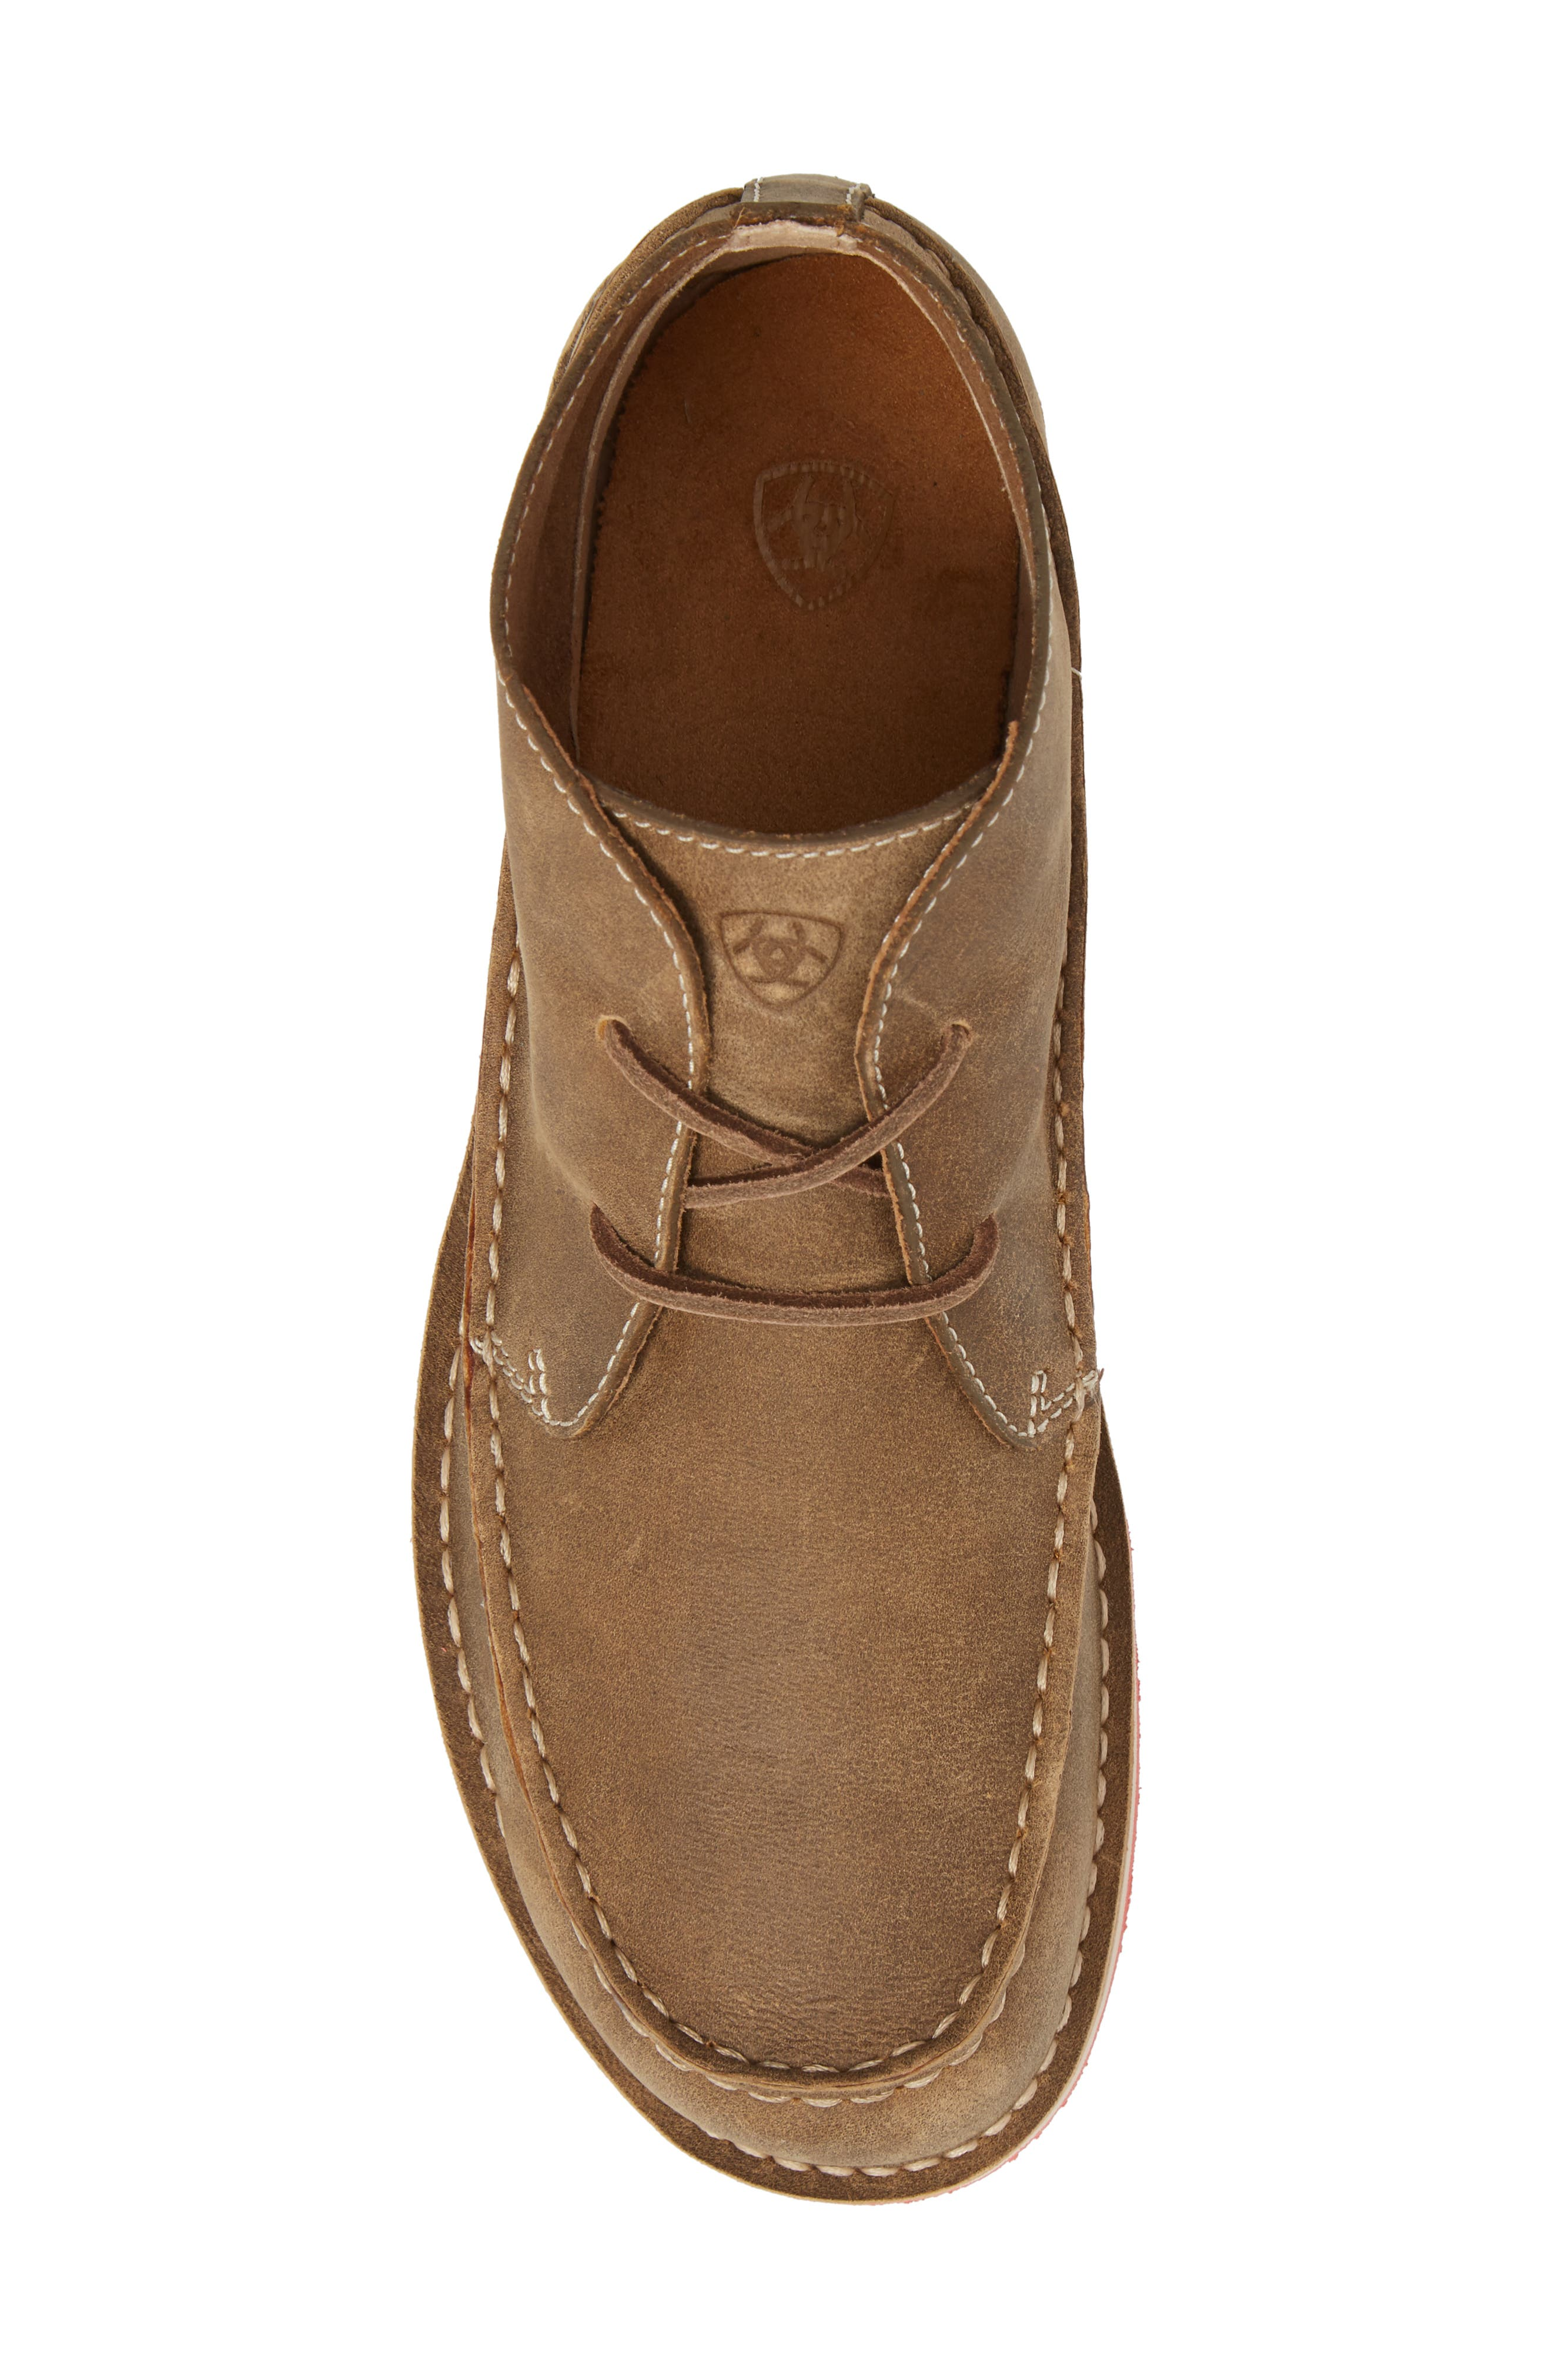 Cruiser Chukka Boot,                             Alternate thumbnail 5, color,                             Lace Brown Bomber Leather